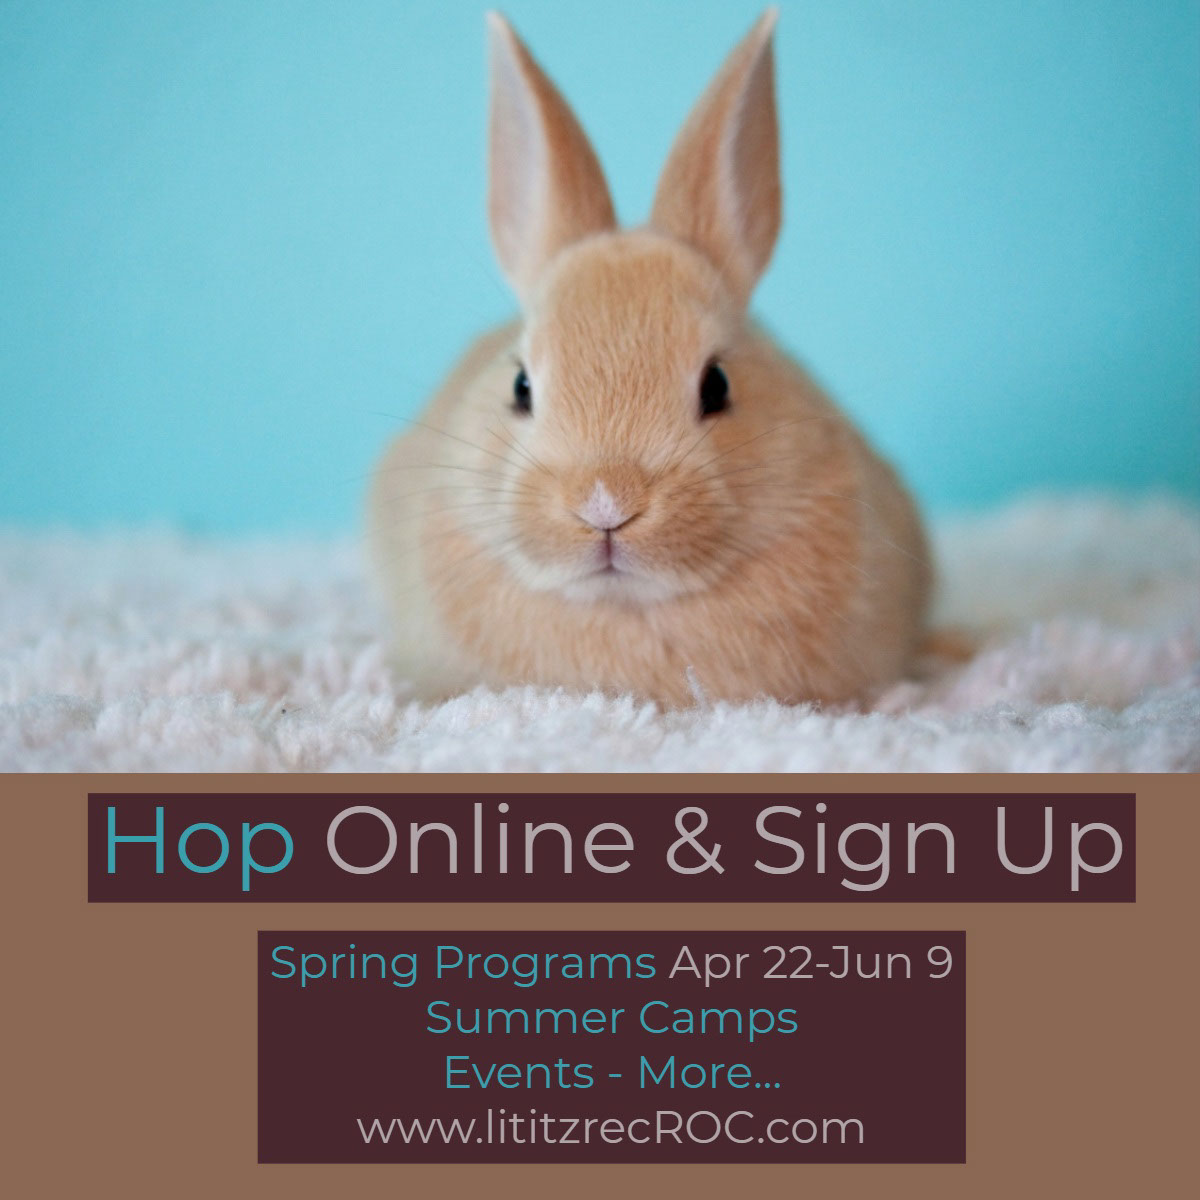 Hop Online & Sign Up Hop Online & Sign Up<P>Spring Programs Apr 22-Jun 9<BR>Summer Camps<BR>Events - More... www.lititzrecROC.com